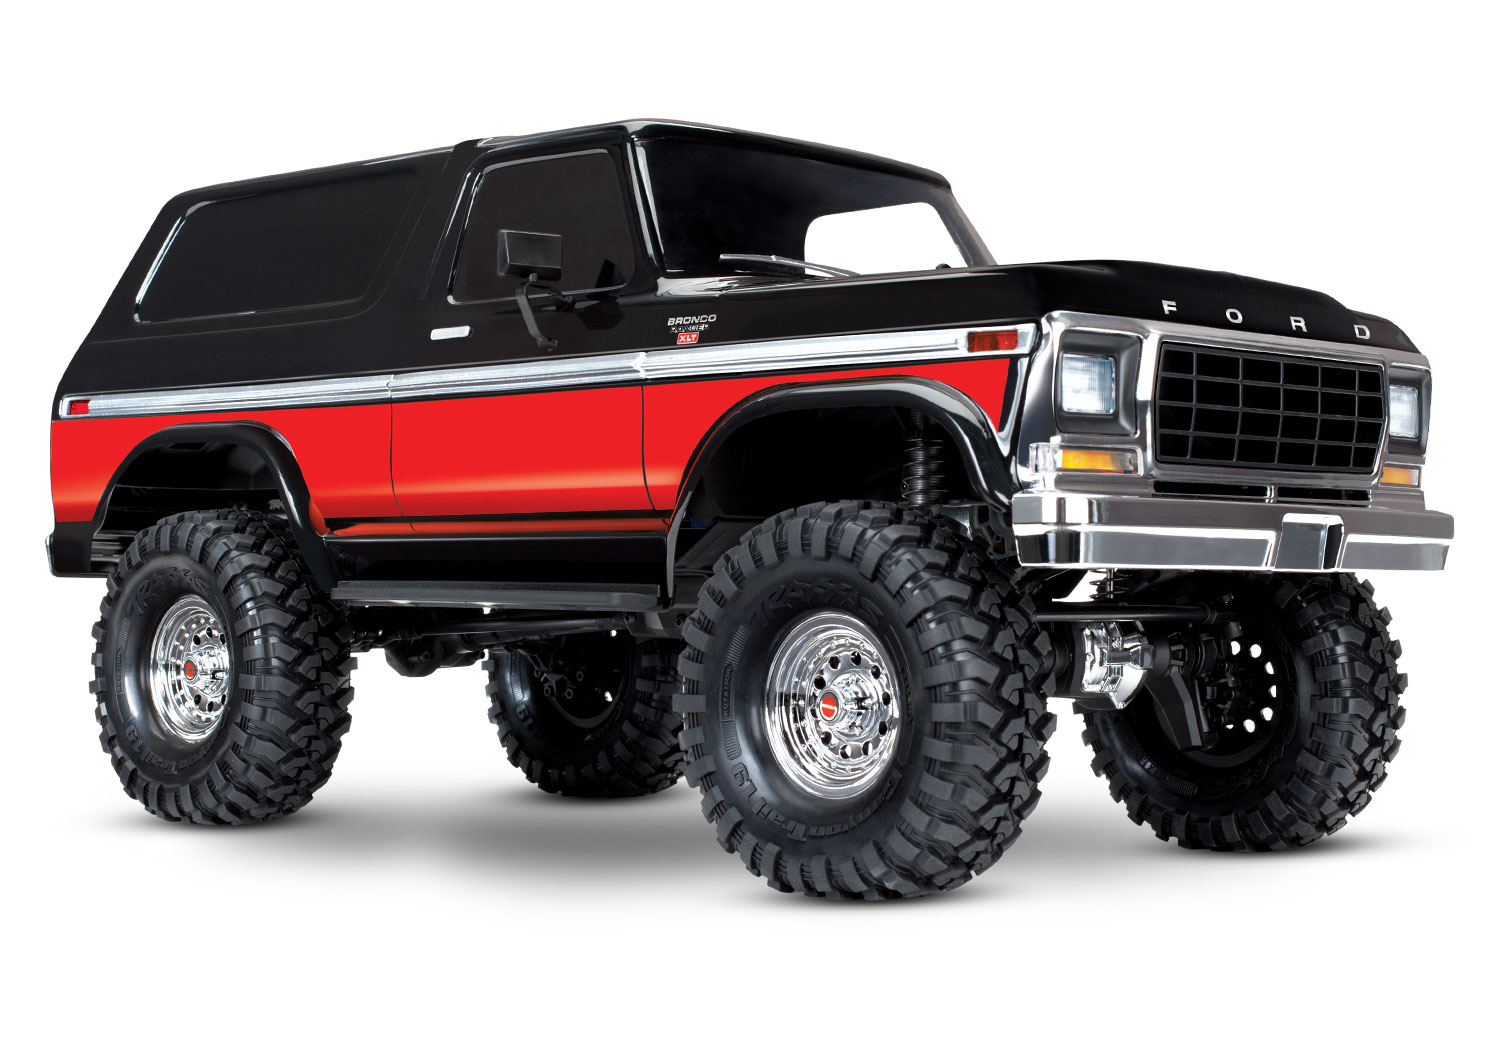 Traxxas Trx 4 Ford Bronco 110 Tqi Rtr Tra82046 Astra Wiring Diagram Rims Bcs Available Colors